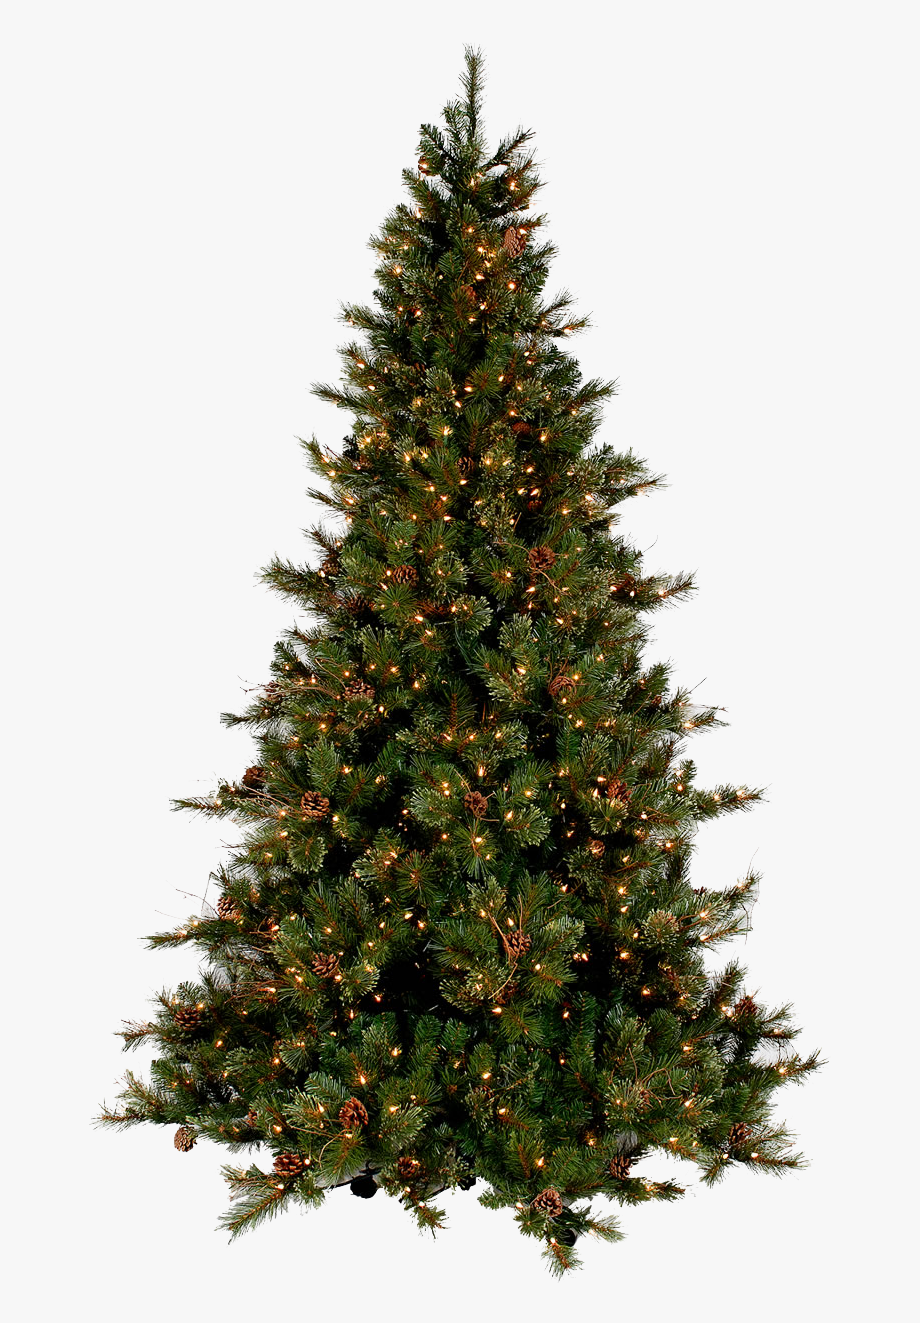 Free Christmas Tree Png Transparent Images, Download.